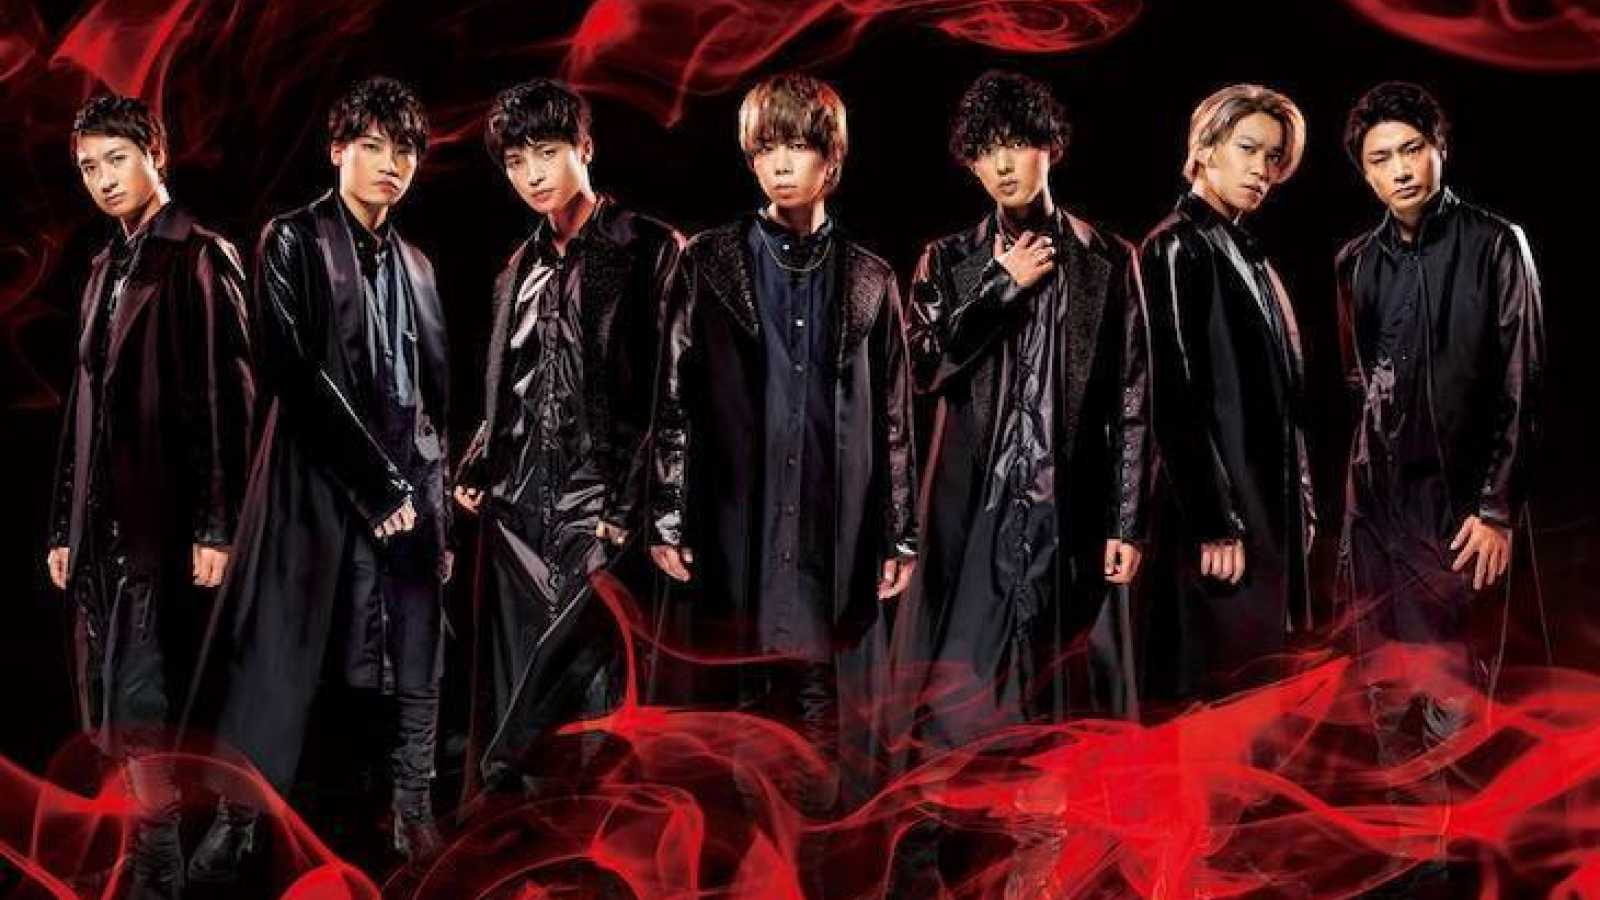 New Album from Kis-My-Ft2 © Kis-My-Ft2. All rights reserved.